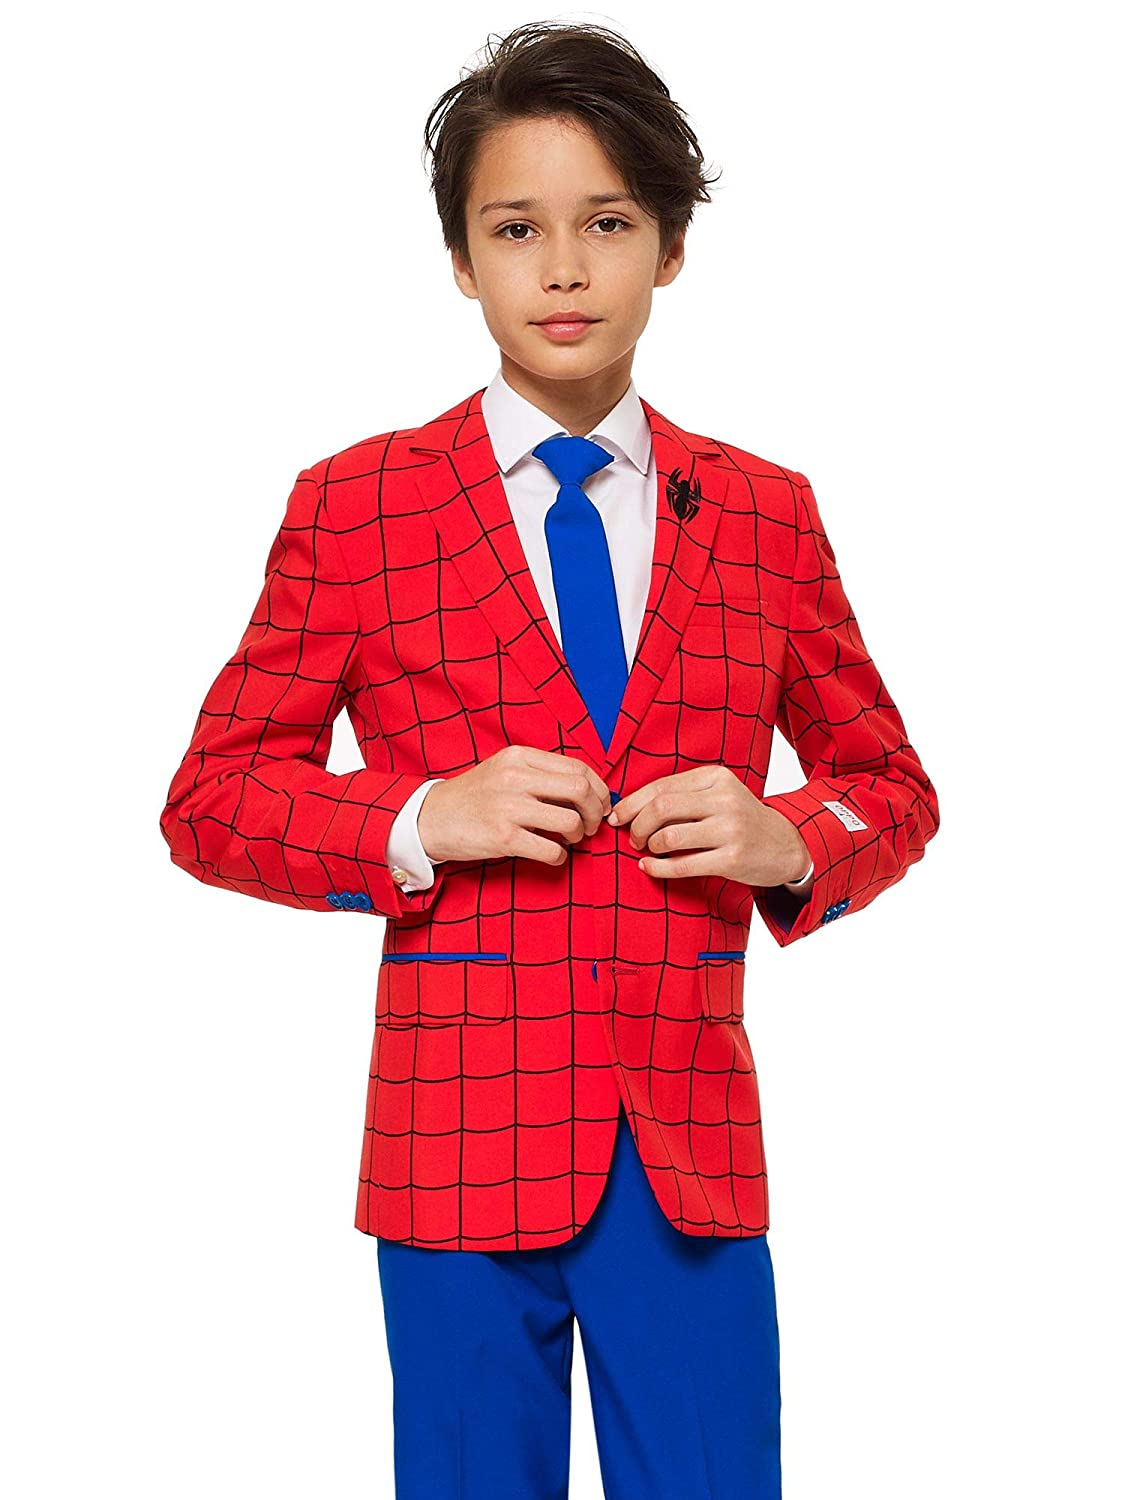 Opposuits Crazy Suits for Boys in Different Prints – Comes with Jacket, Pants and Tie In Funny Designs